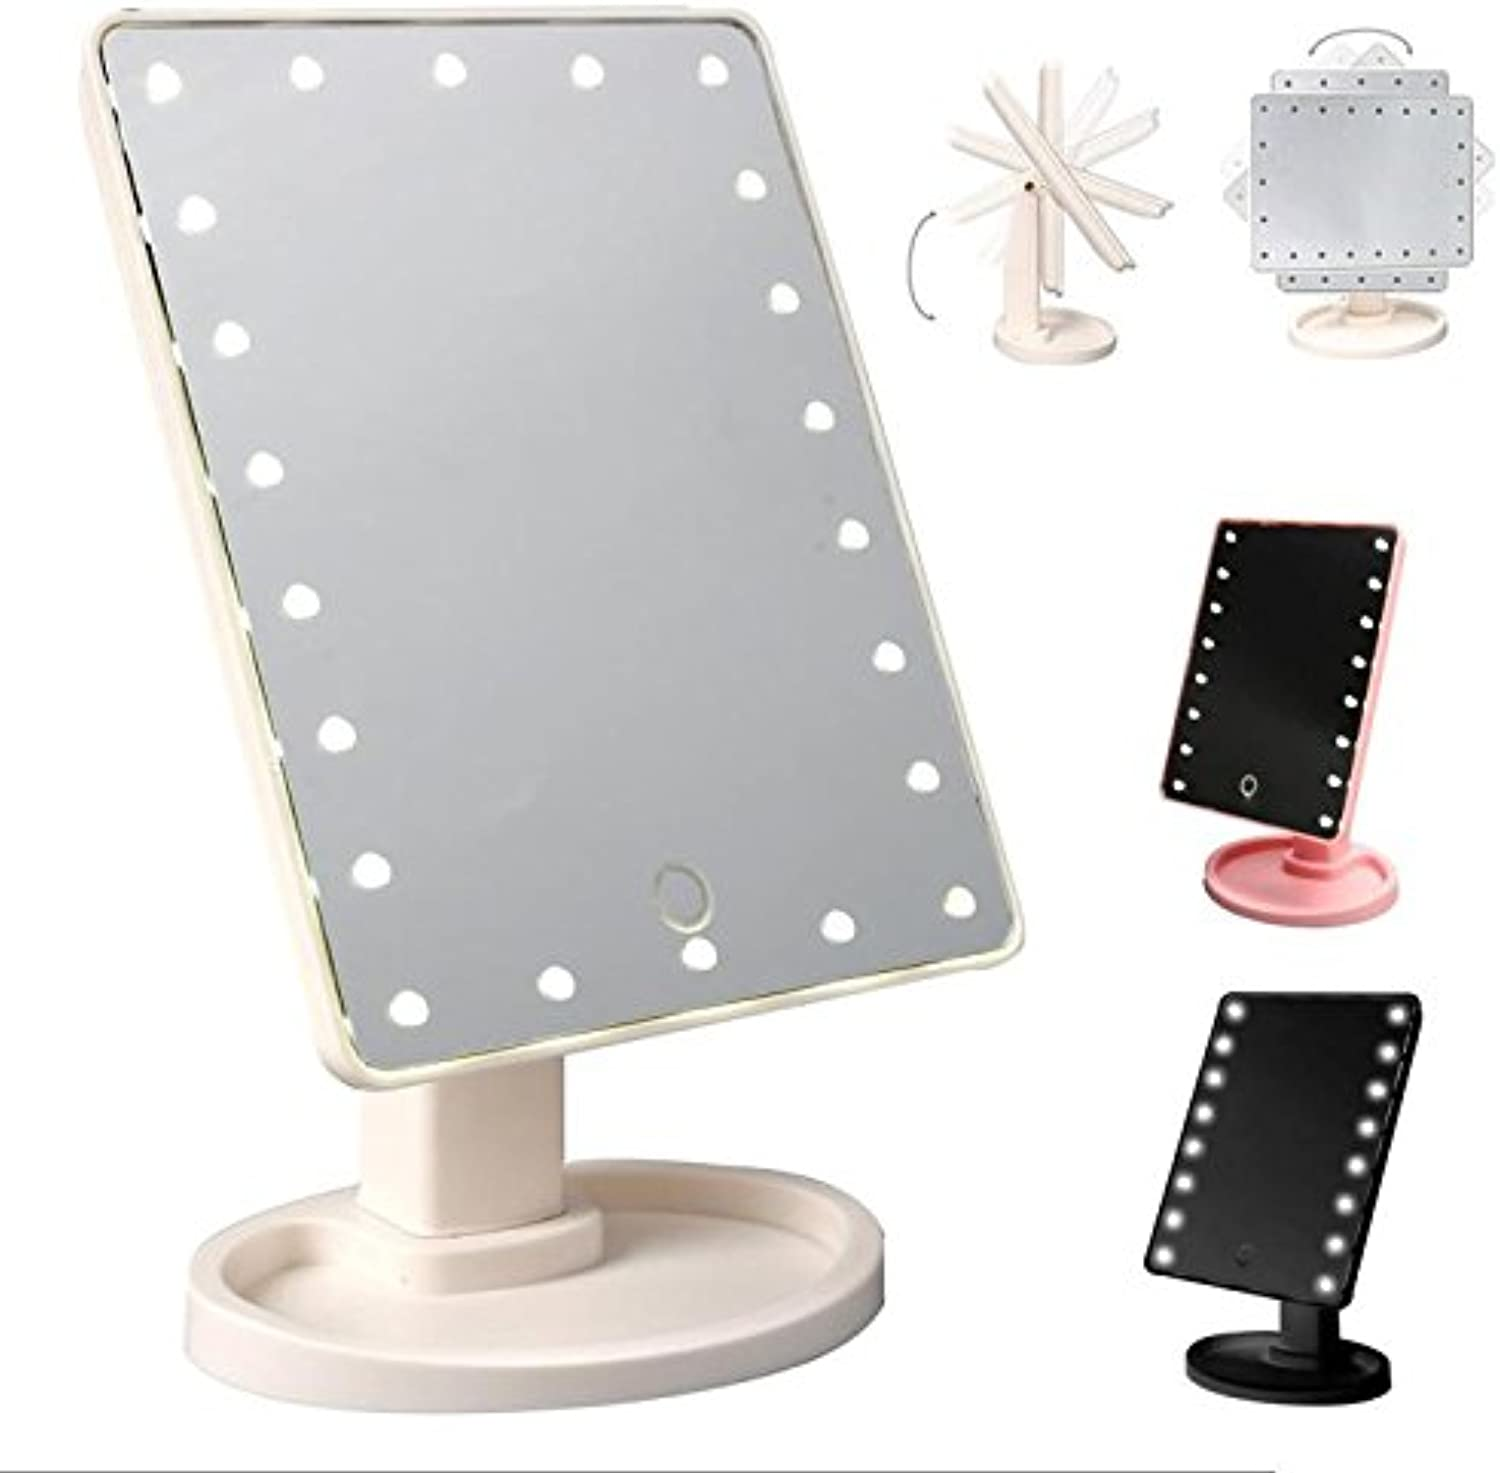 22 LED Touch Screen Makeup Mirror Professional Vanity Mirror Lights Health Beauty Adjustable Countertop 180 redating A5,Pink